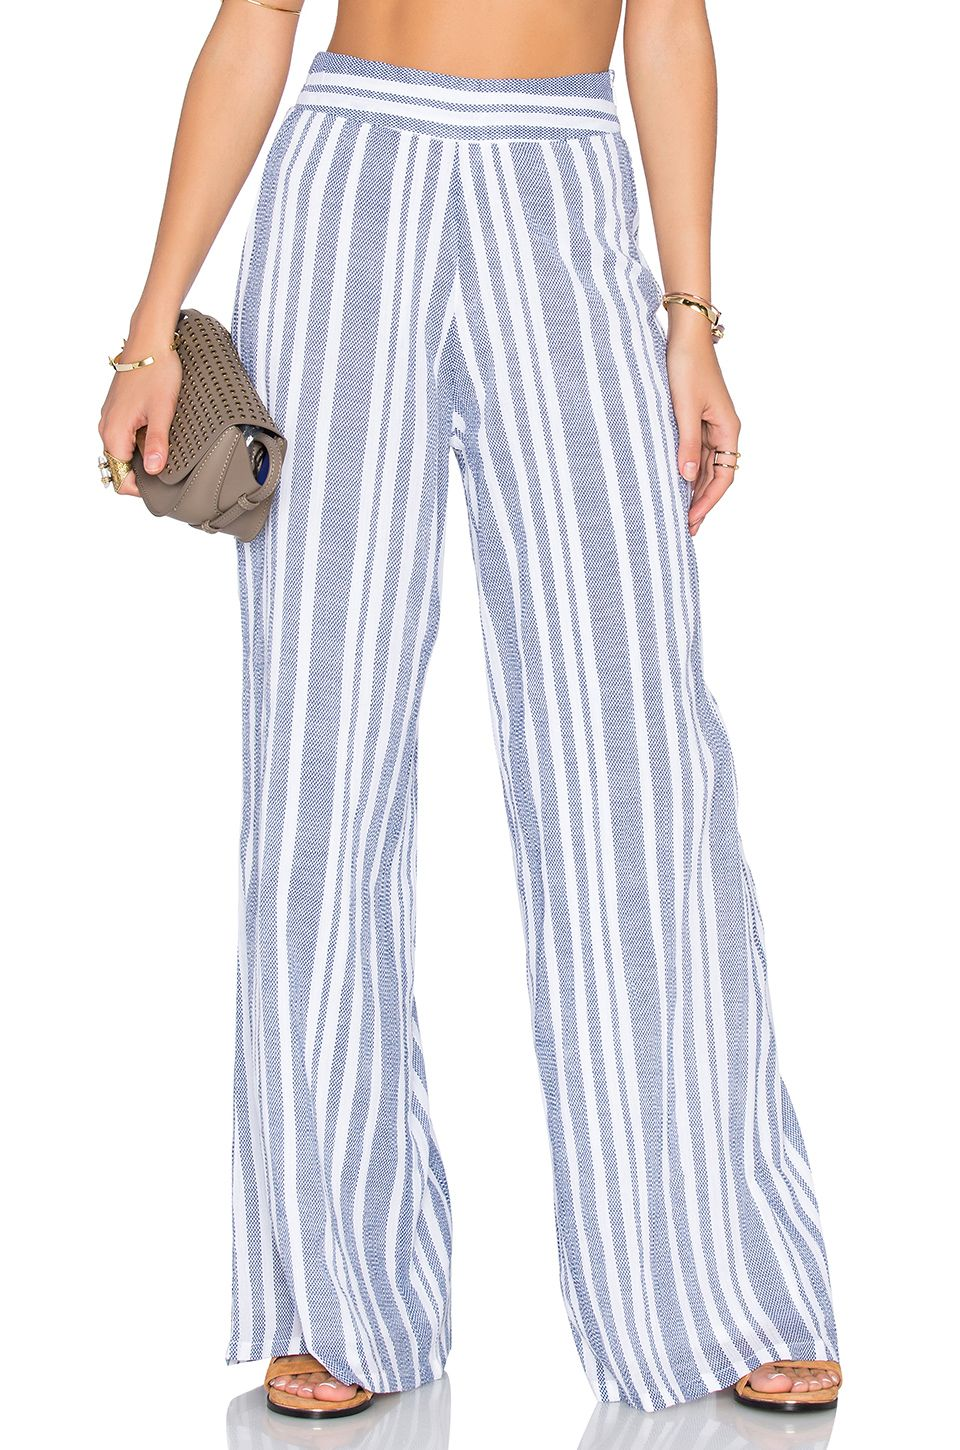 Tularosa Marley Pant In Blue Amp White Fashion Linen